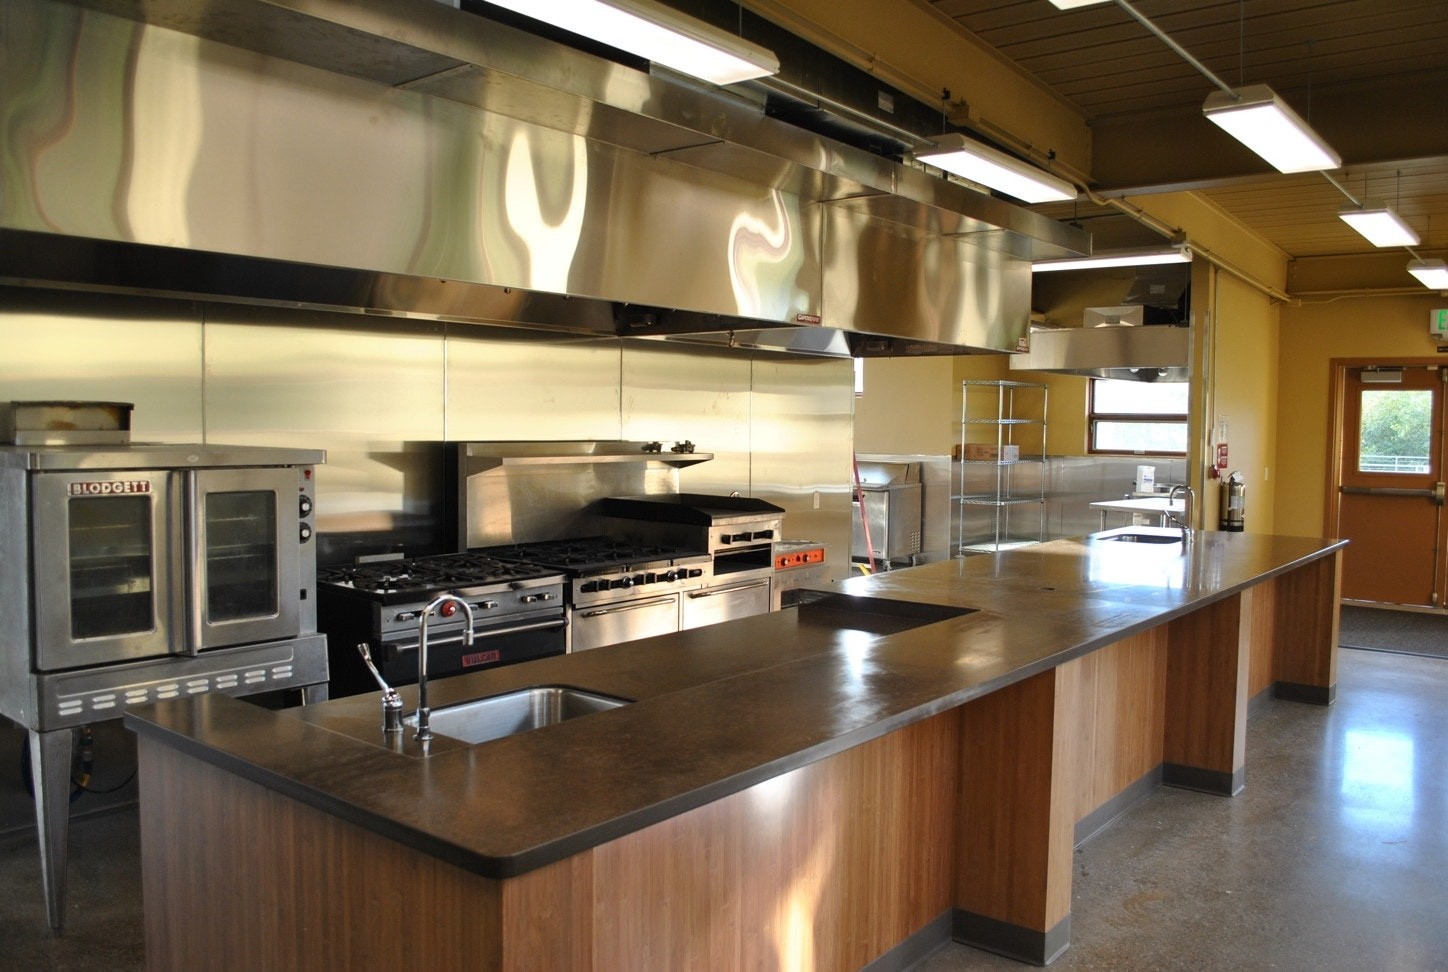 Tampa Custom Kitchen Remodeling Pros - countertops, bathrooms, renovations, custom cabinets, flooring-114-We do great kitchen & bath remodeling, home renovations, custom lighting, custom cabinet installation, cabinet refacing and refinishing, outdoor kitchens, commercial kitchen, countertops and more